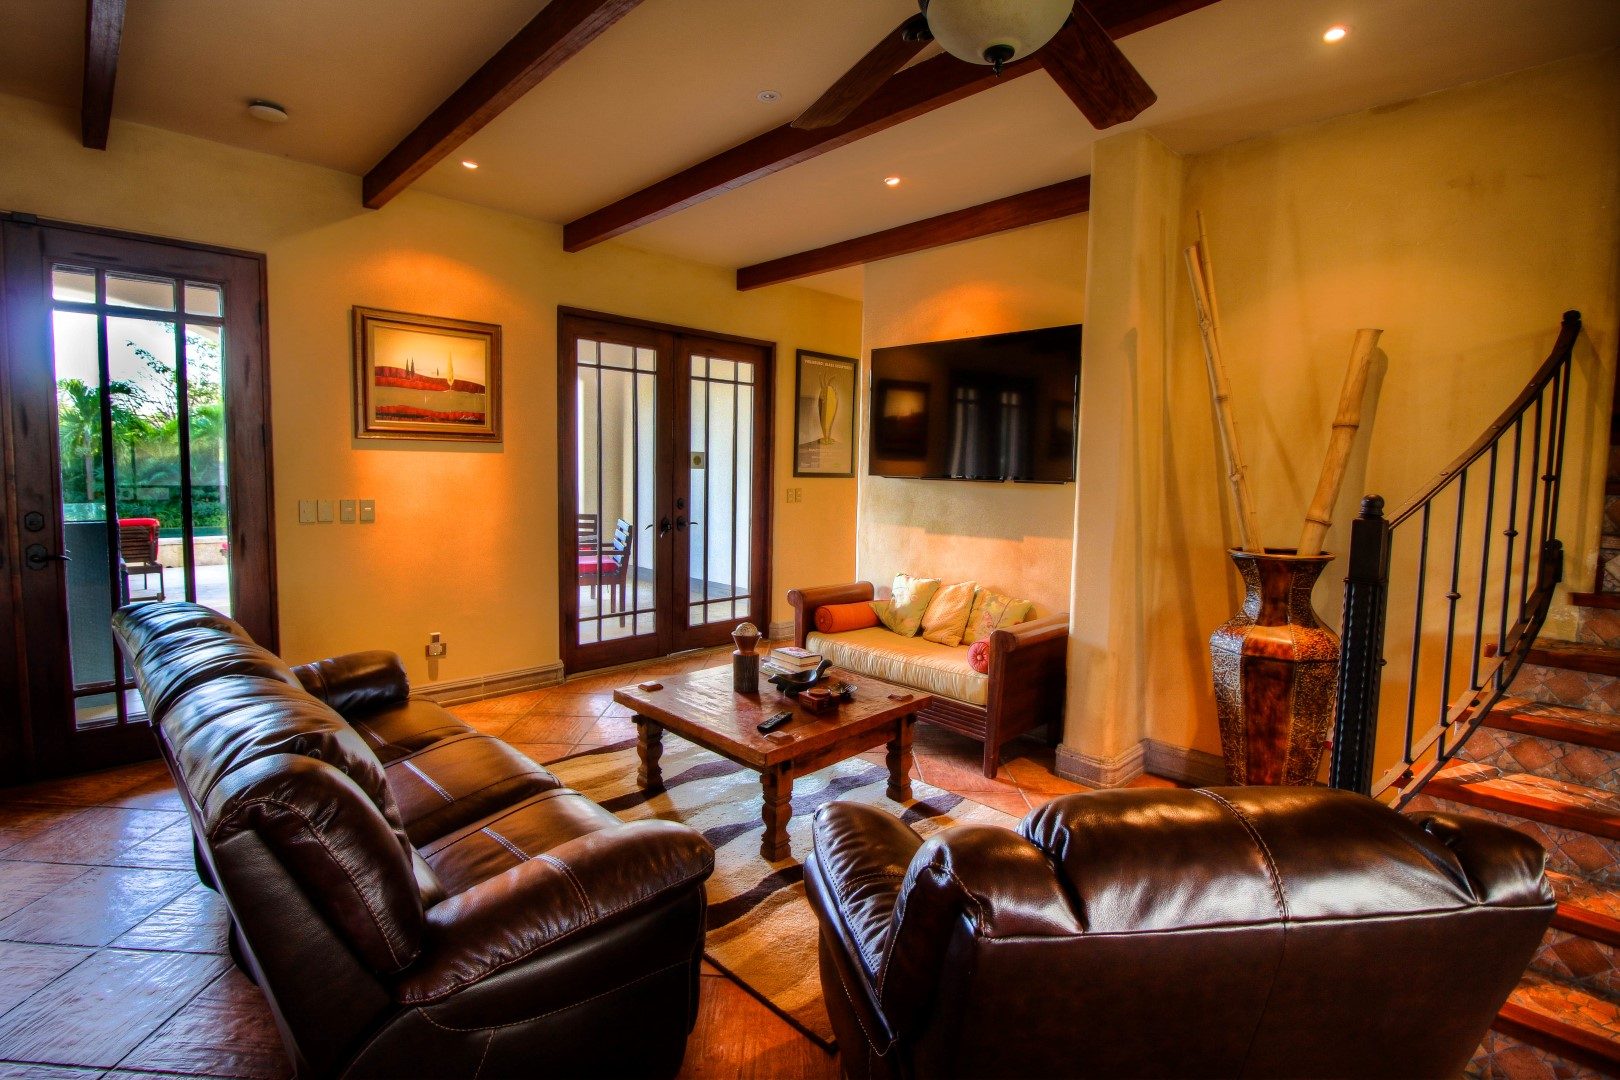 Flat-Screen TV & Comfortable Leather Sofas